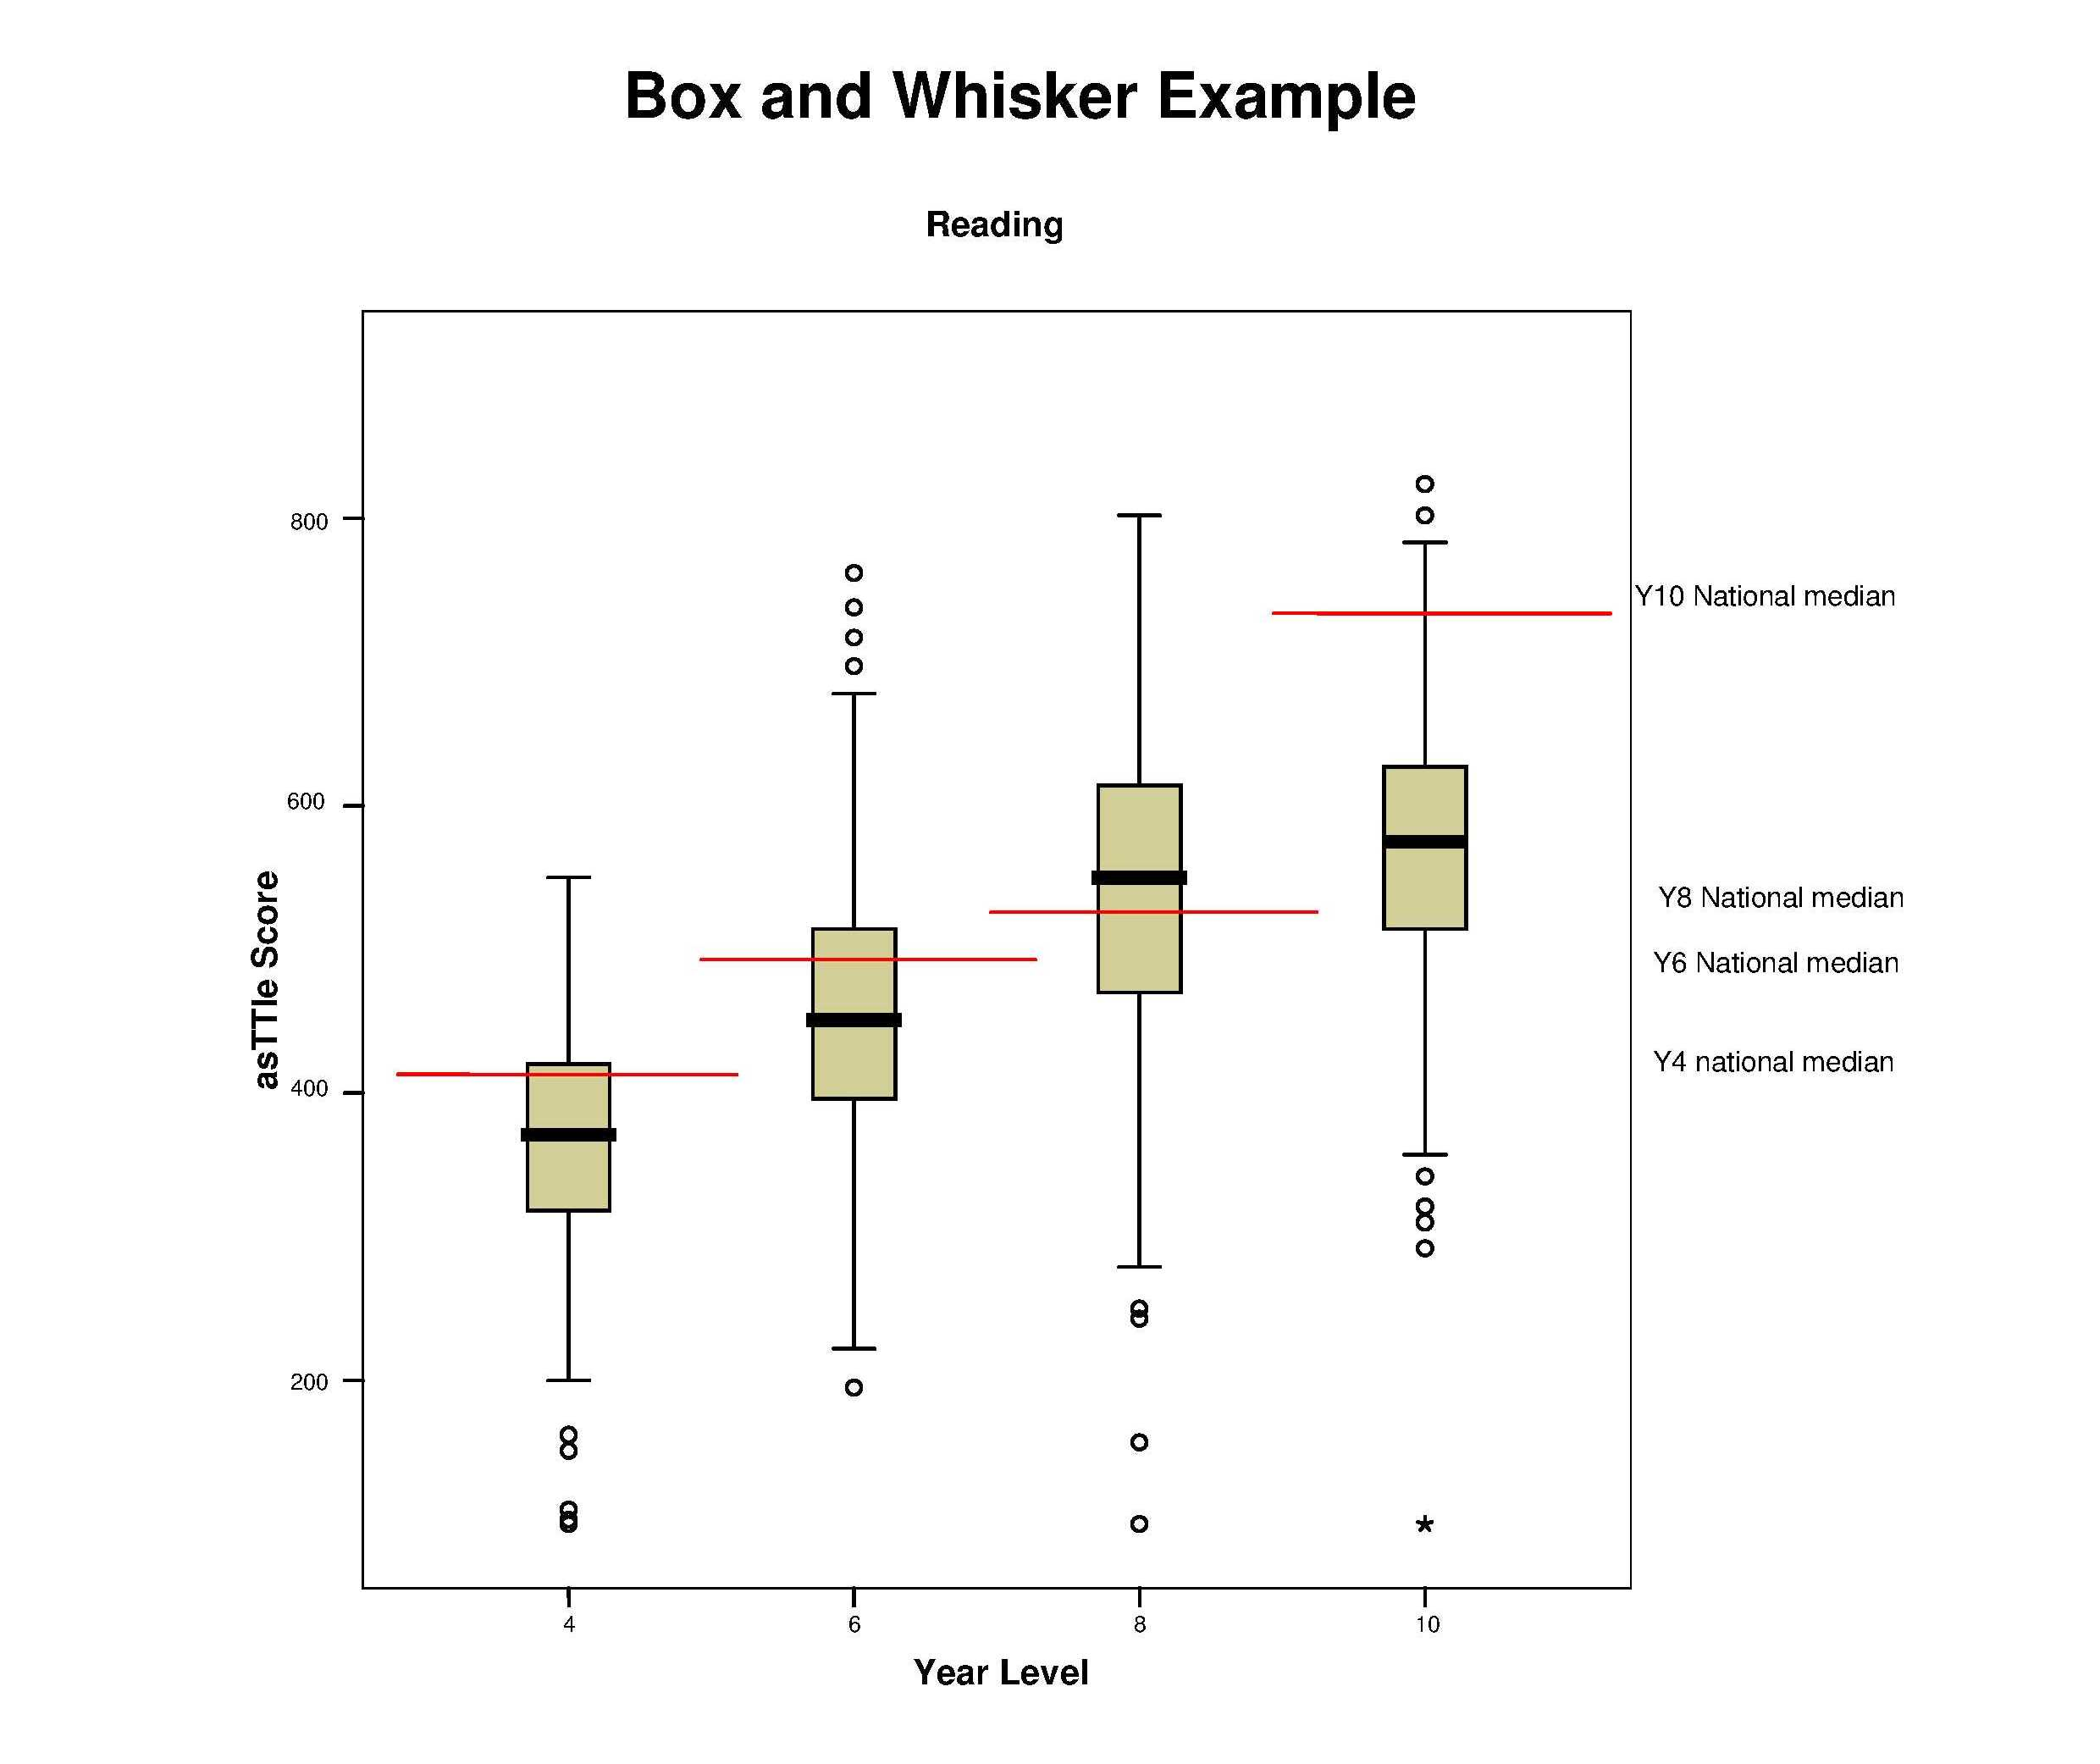 Box And Whisker Graph Reading Andysing Data Using